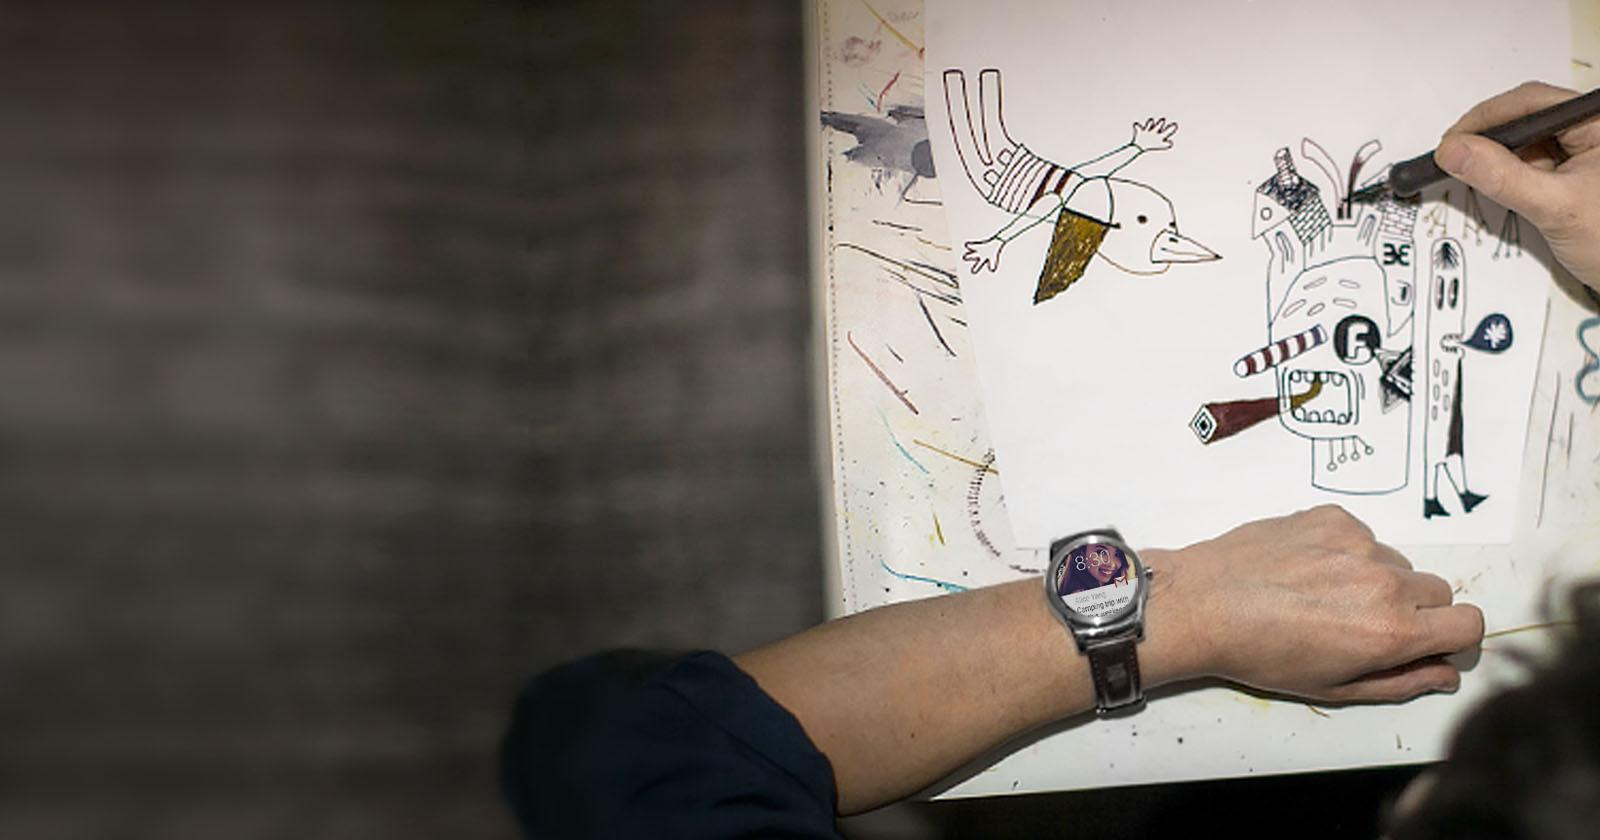 Image of person drawing while simultaneously using the LG Watch Urbane Gold